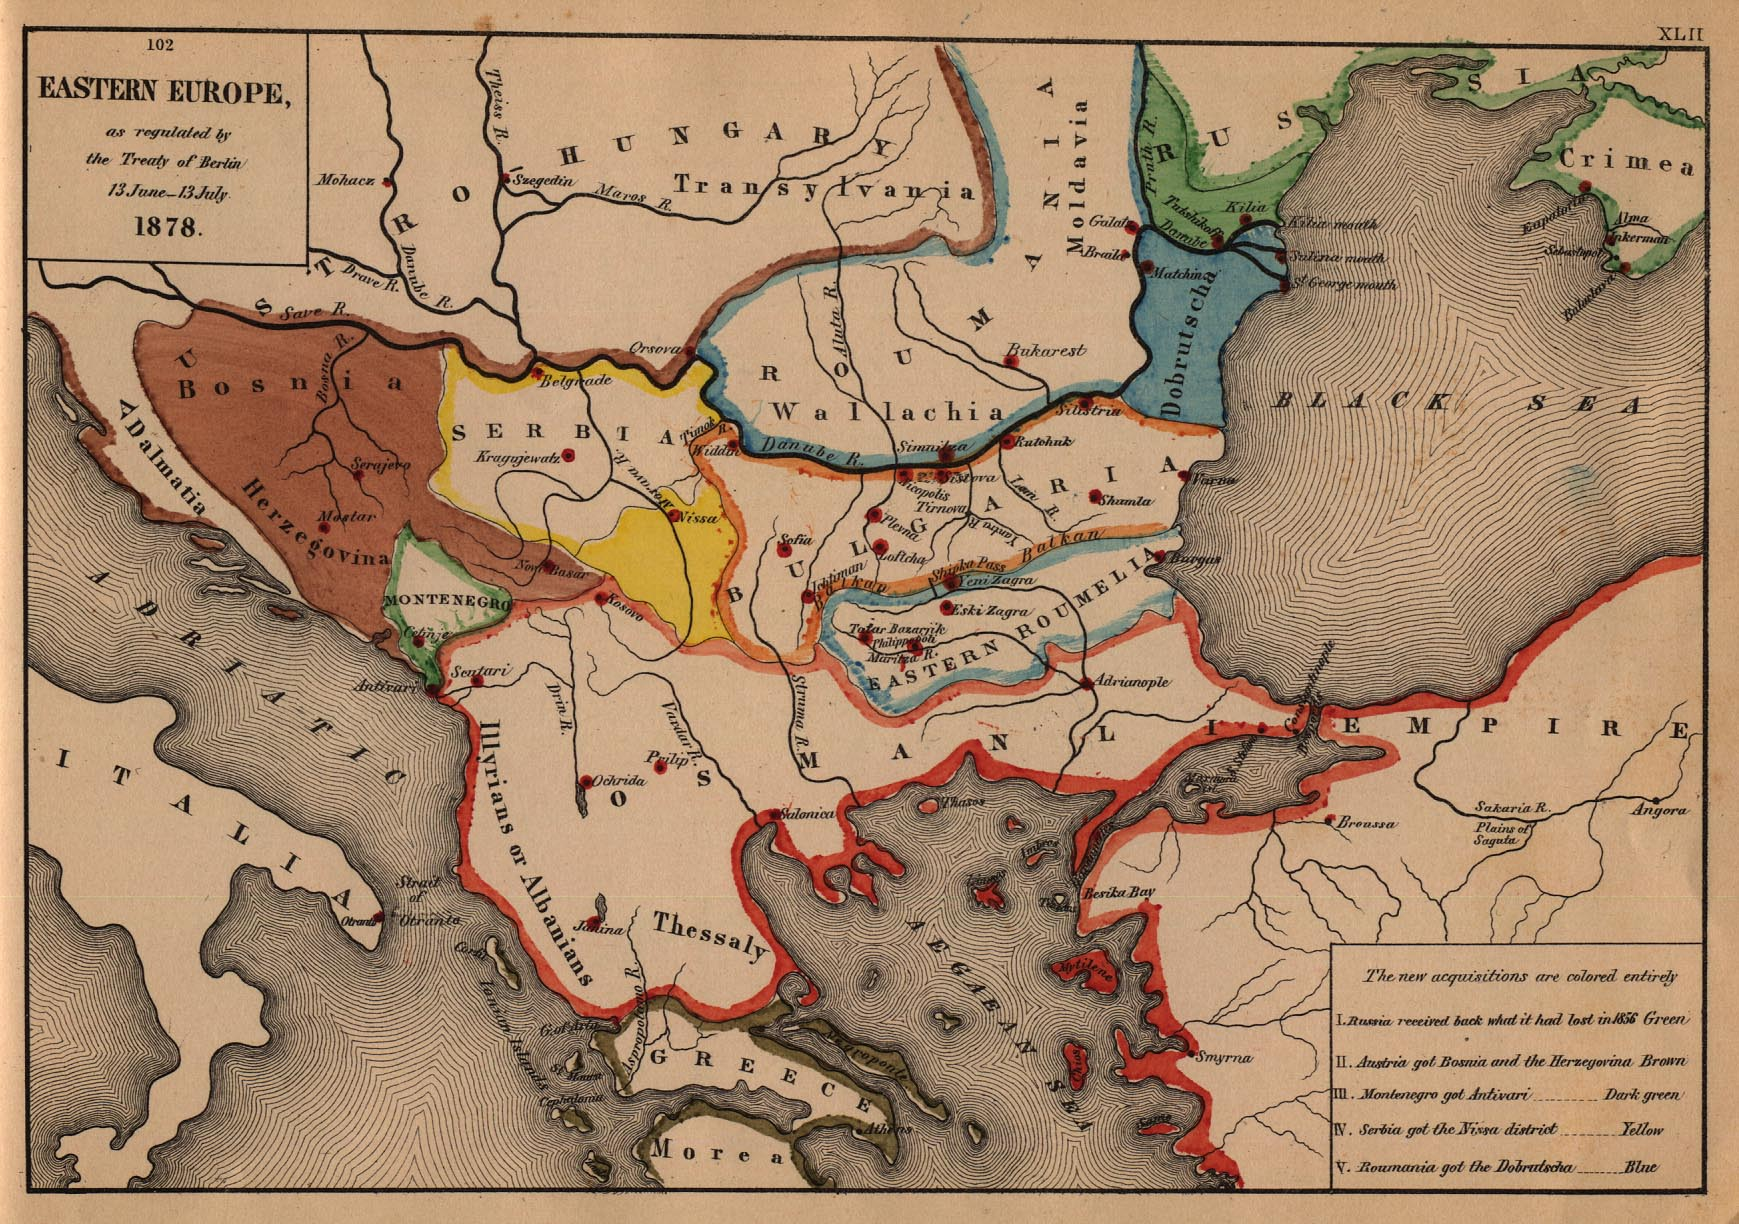 The Balkans Historical Maps Perry Casta eda Map Collection UT Library Online